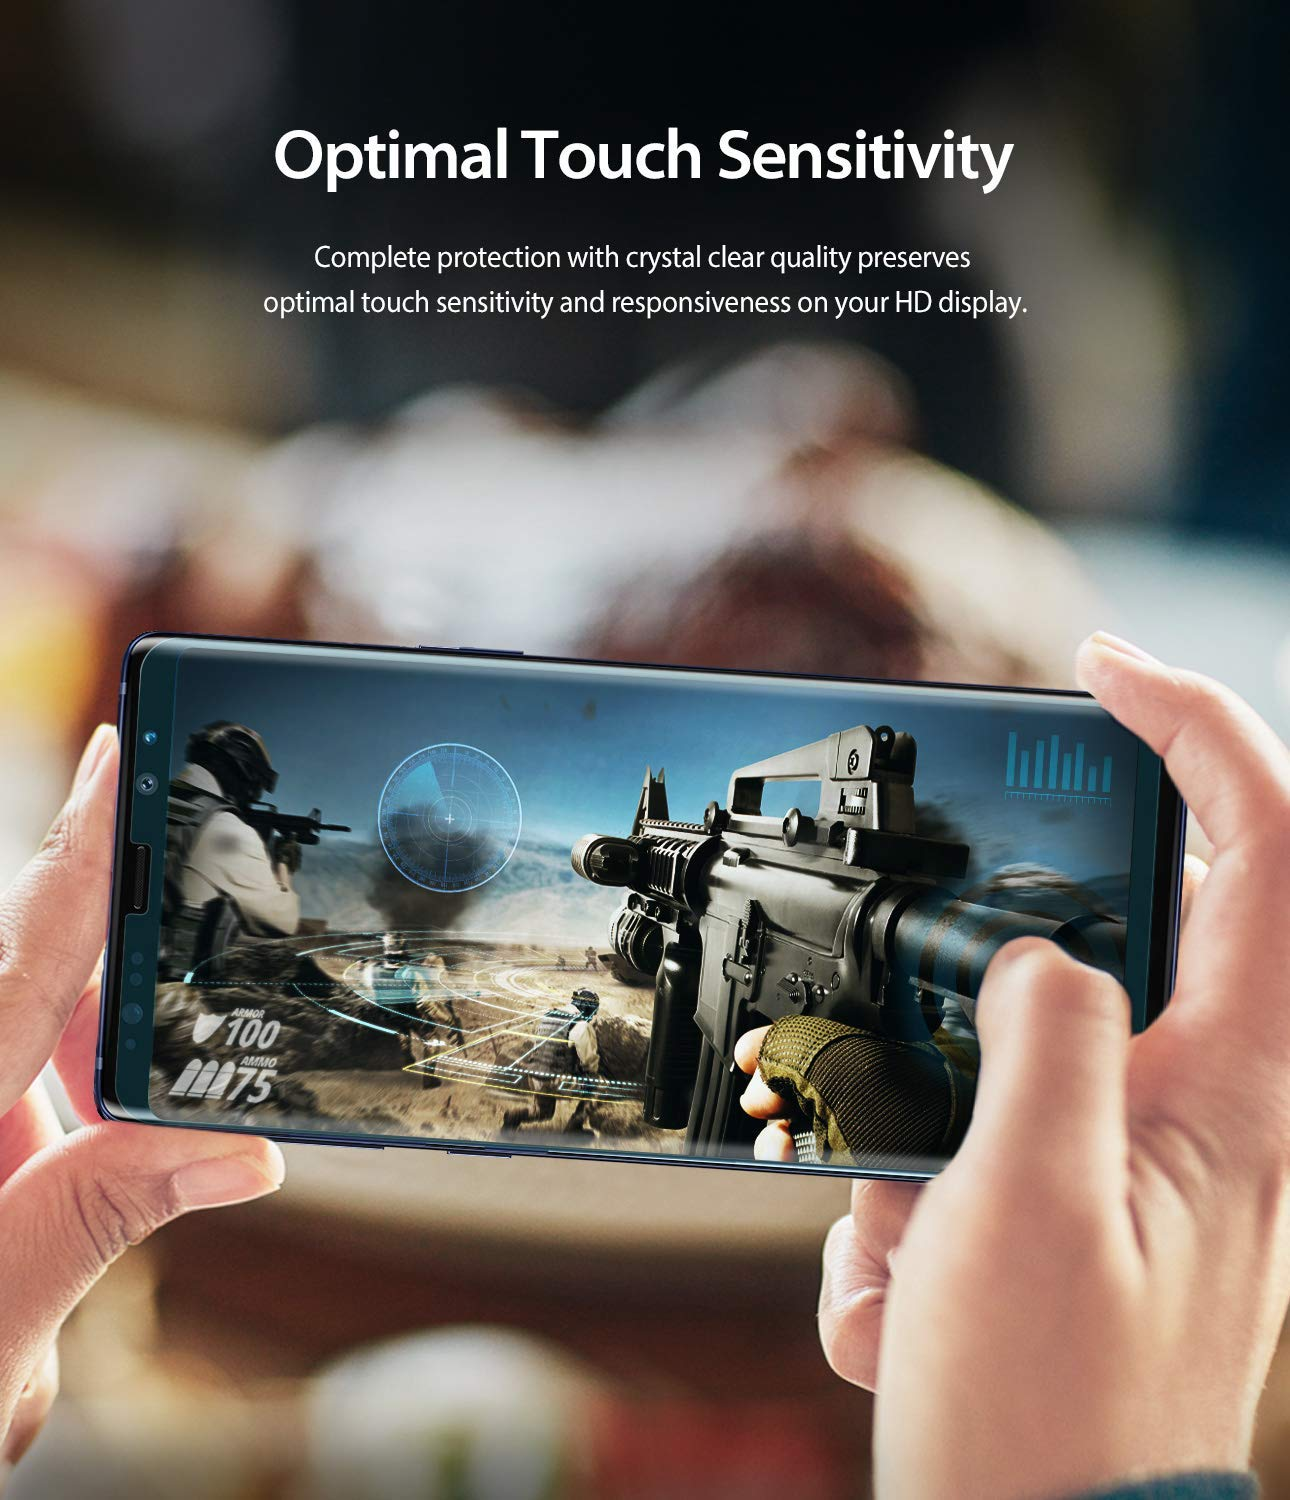 optimal touch sensitivity